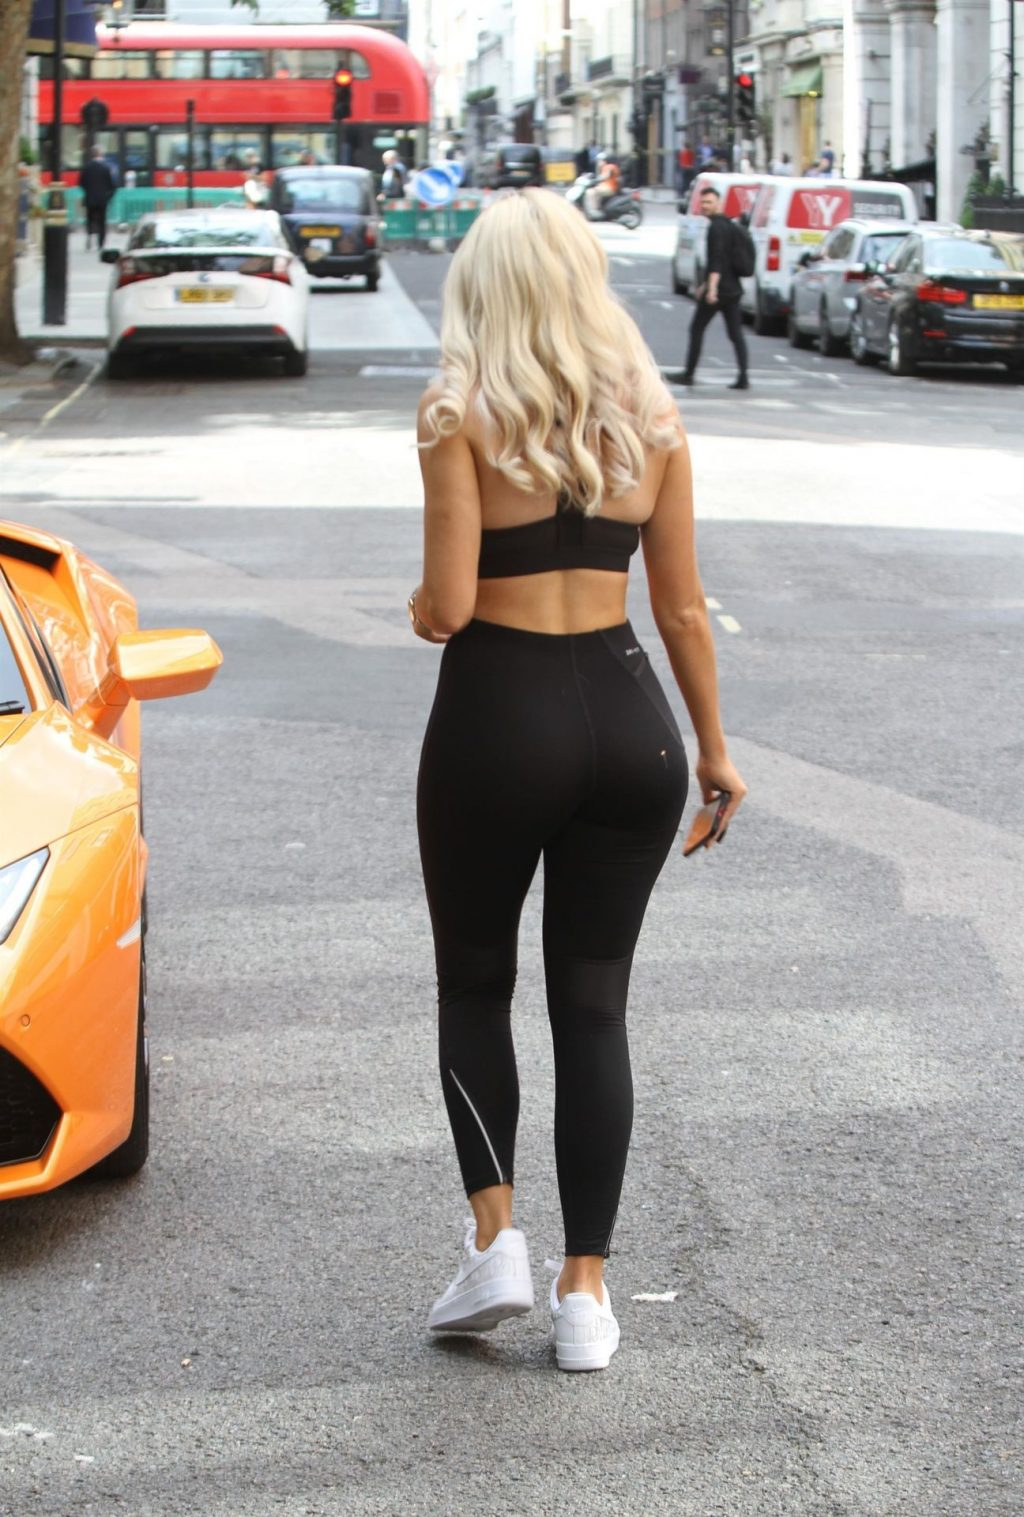 Sexy Chloe Ferry Is Spotted in London (26 Photos)